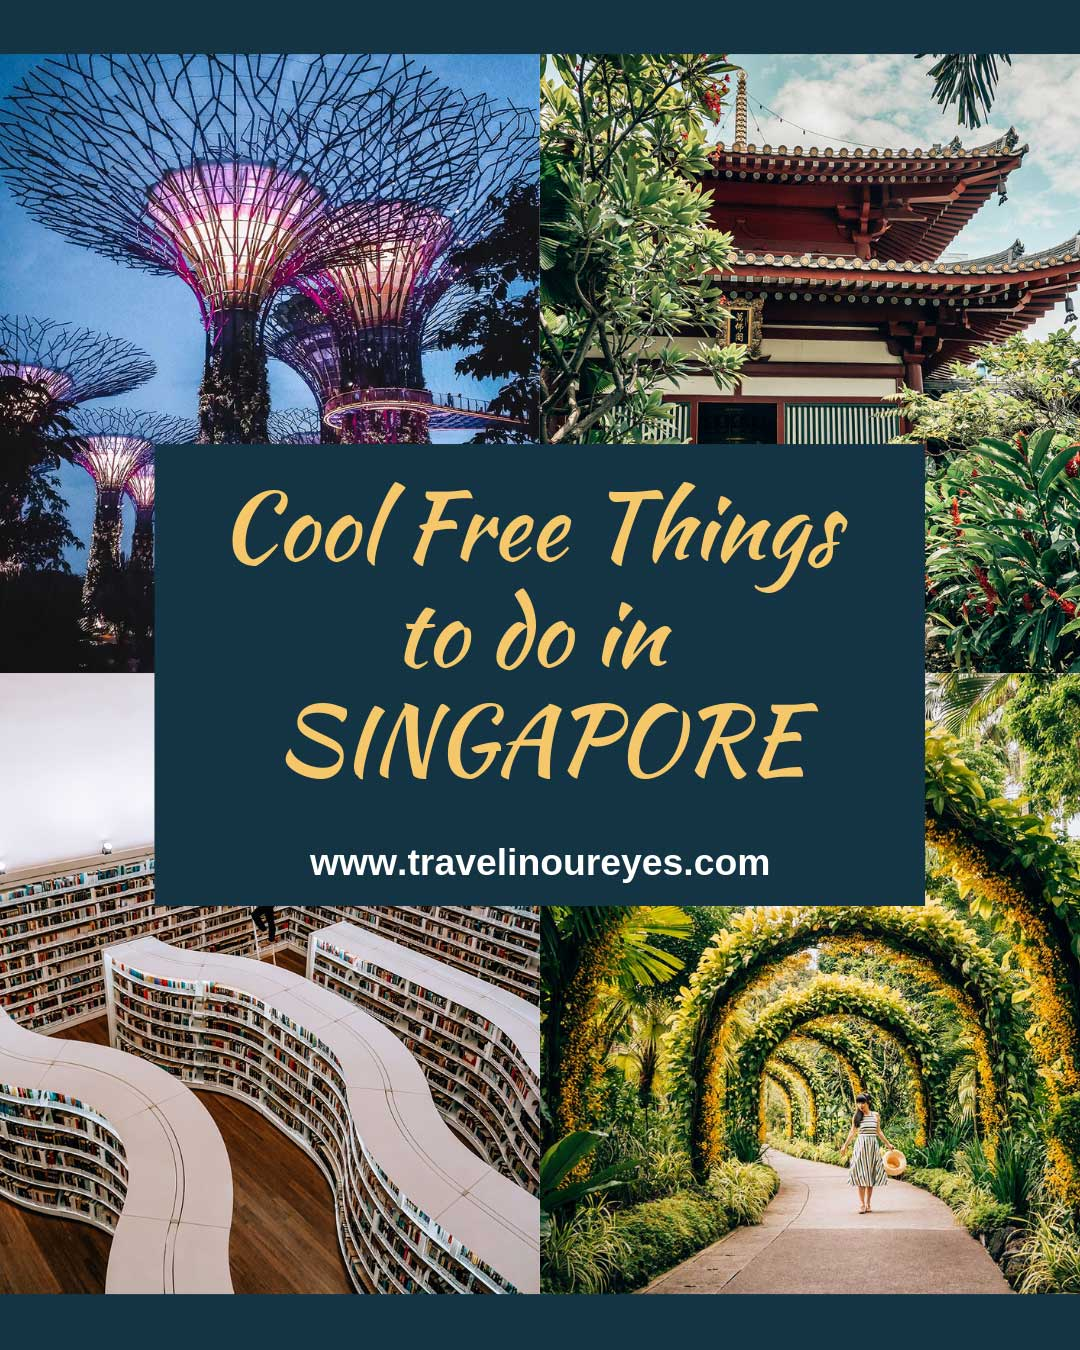 COOL FREE THINGS TO DO IN SINGAPORE